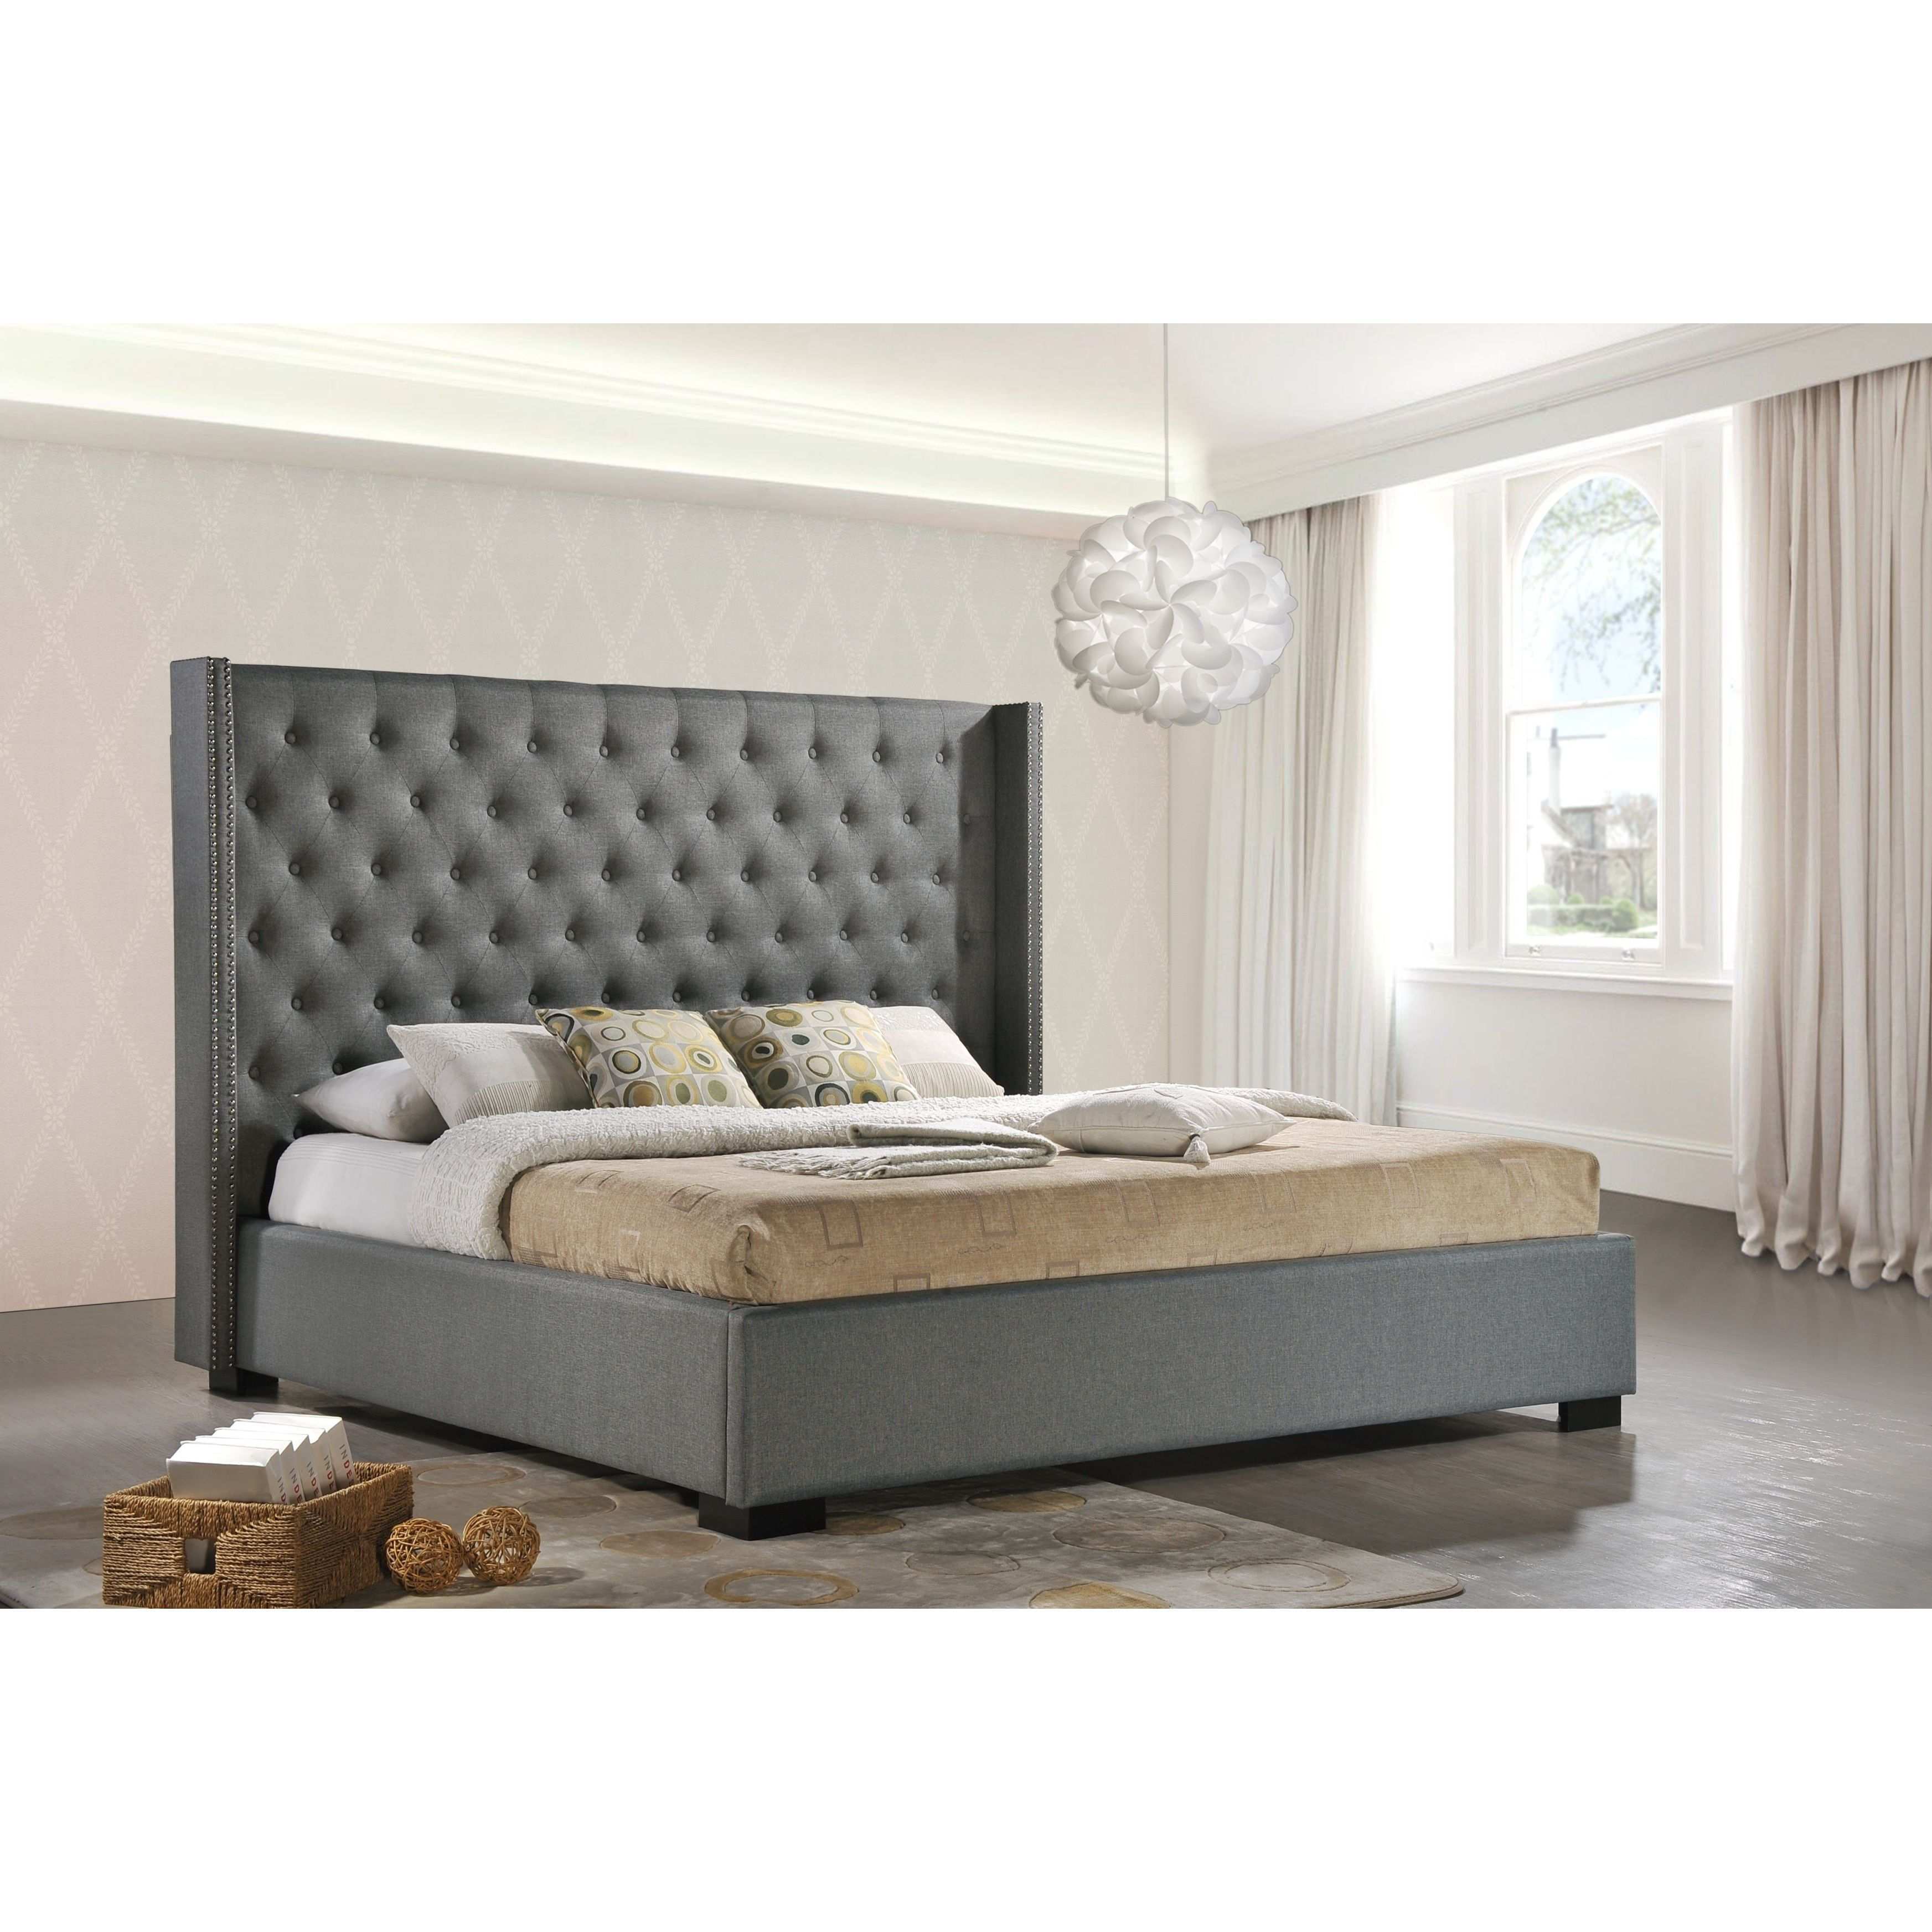 appointed bed different four home well velvet for the wingback luxuries tufted sizes pearl house available in